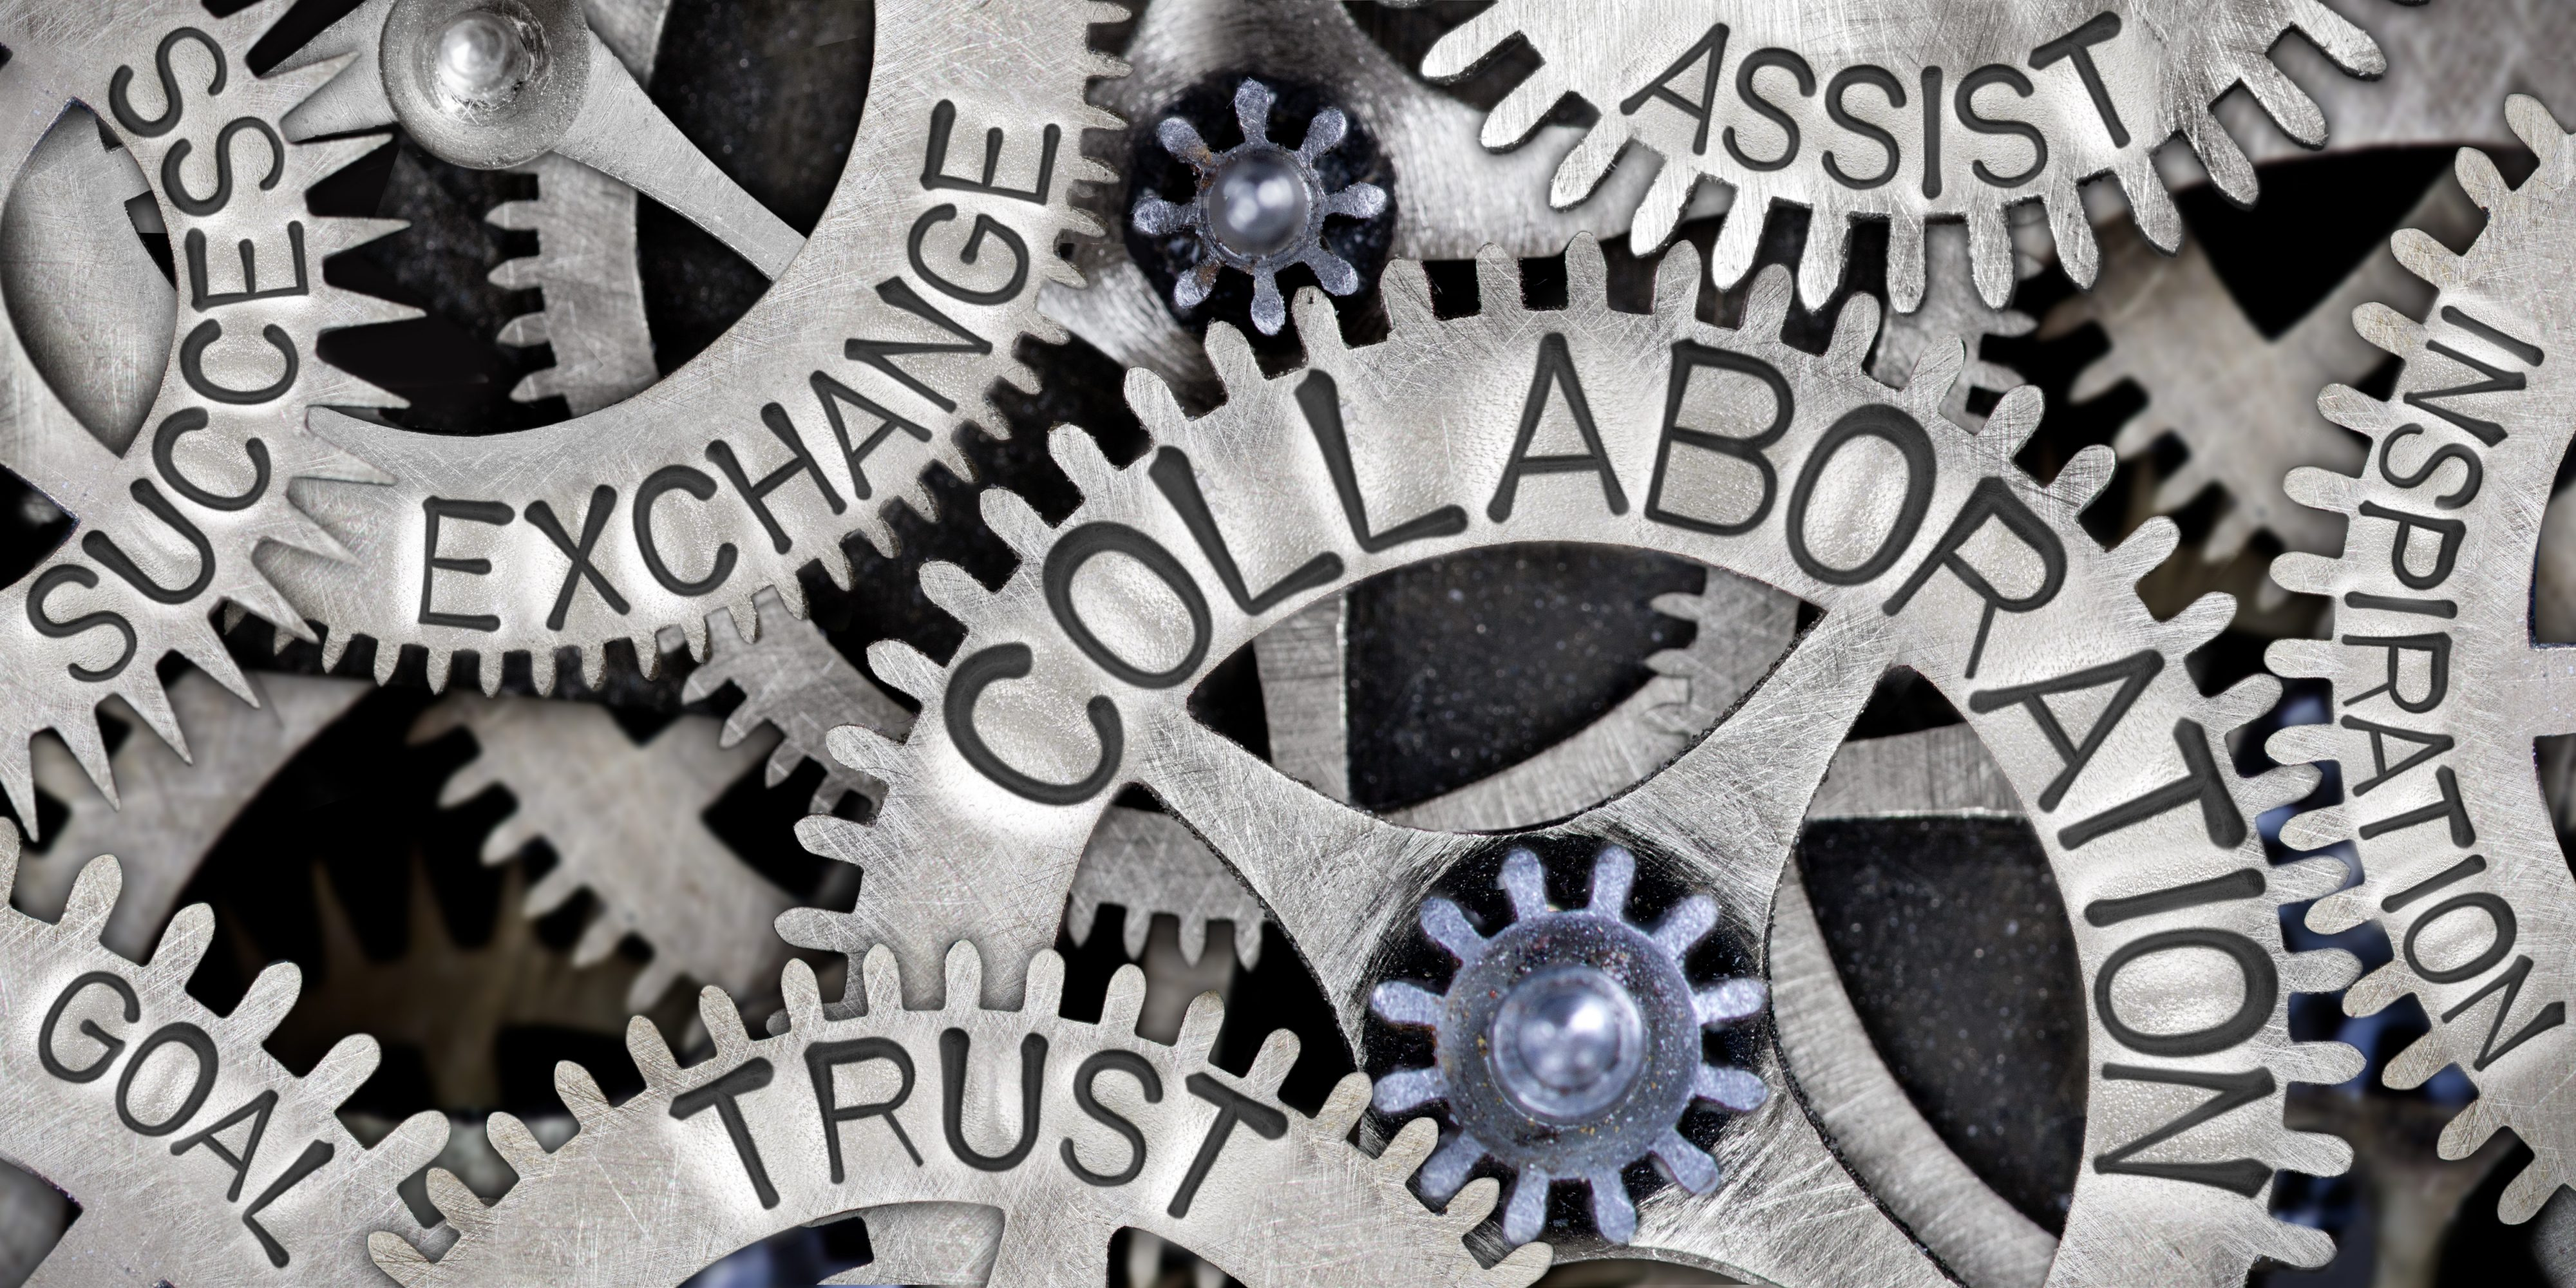 Metal cogs with various words including collaboration, trust, goal, assist, inspiration, exchange and success.